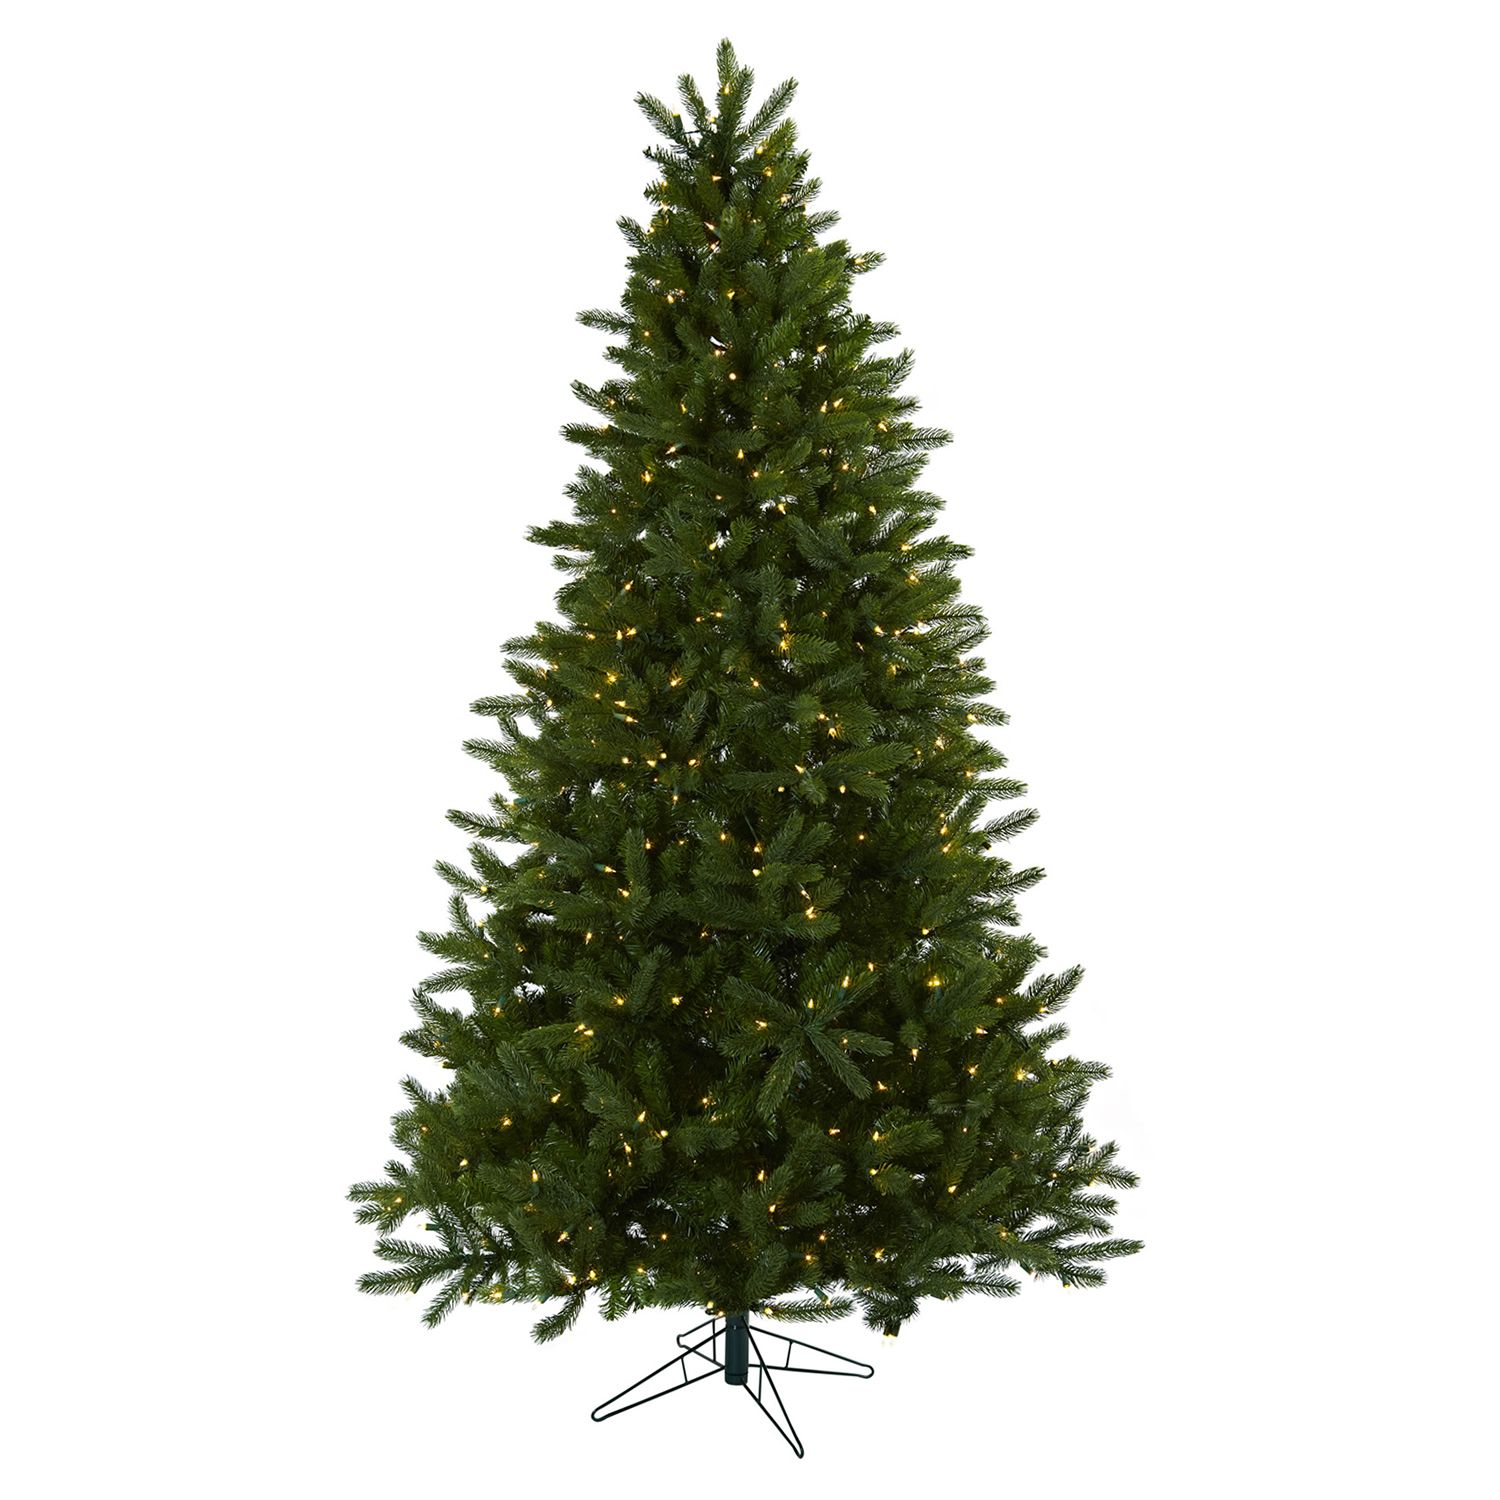 best rembrandt prelit artificial christmas tree with classic pine full prelit christmas tree - Best Place To Buy Artificial Christmas Trees